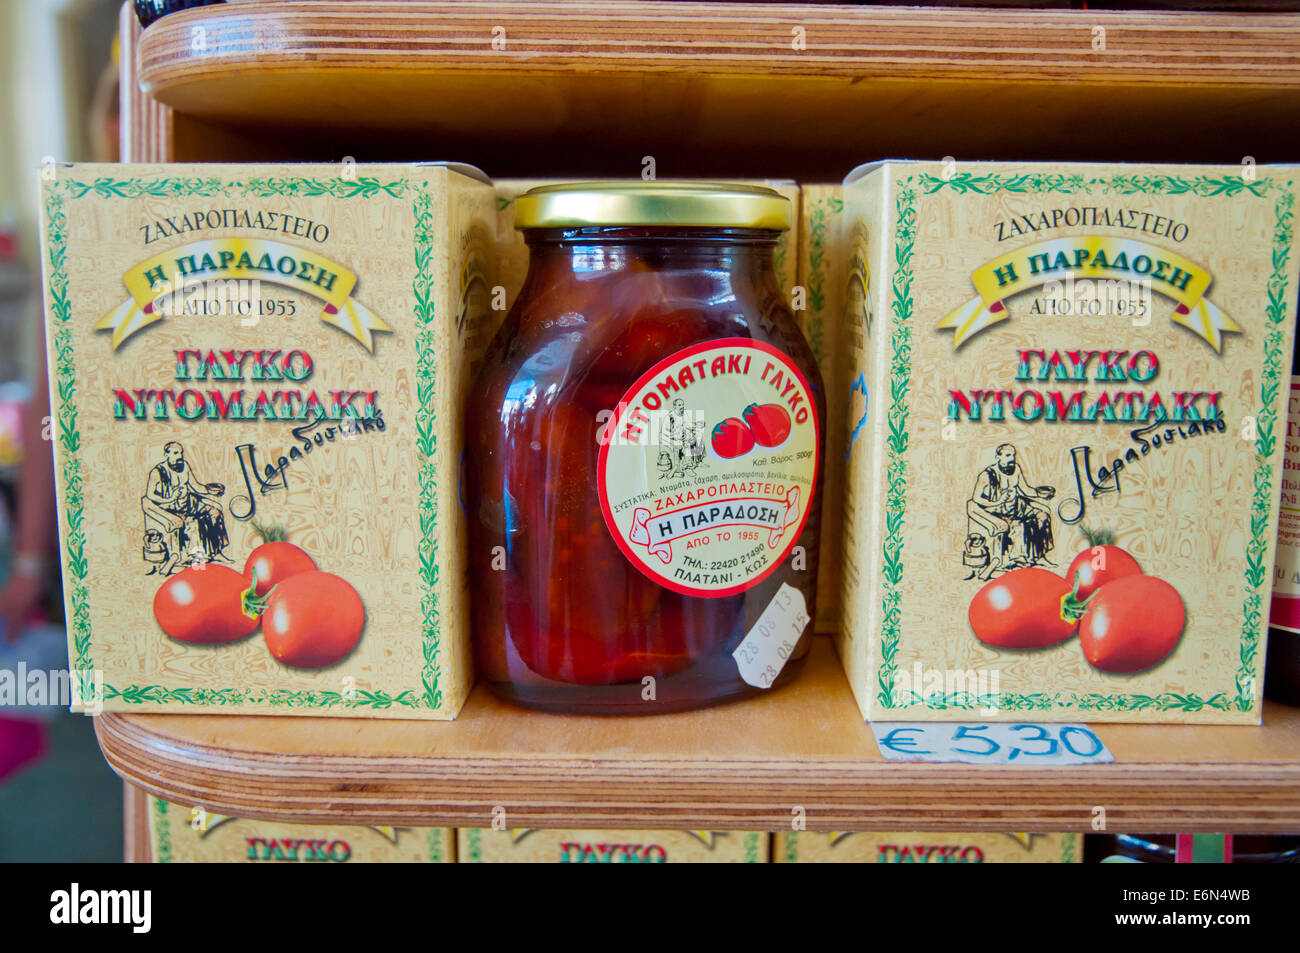 Preserved jarred sweet whole local tomatoes, Glyko Tomataki, Dimoiki Dorag market hall, Eleftherias square, Kos - Stock Image